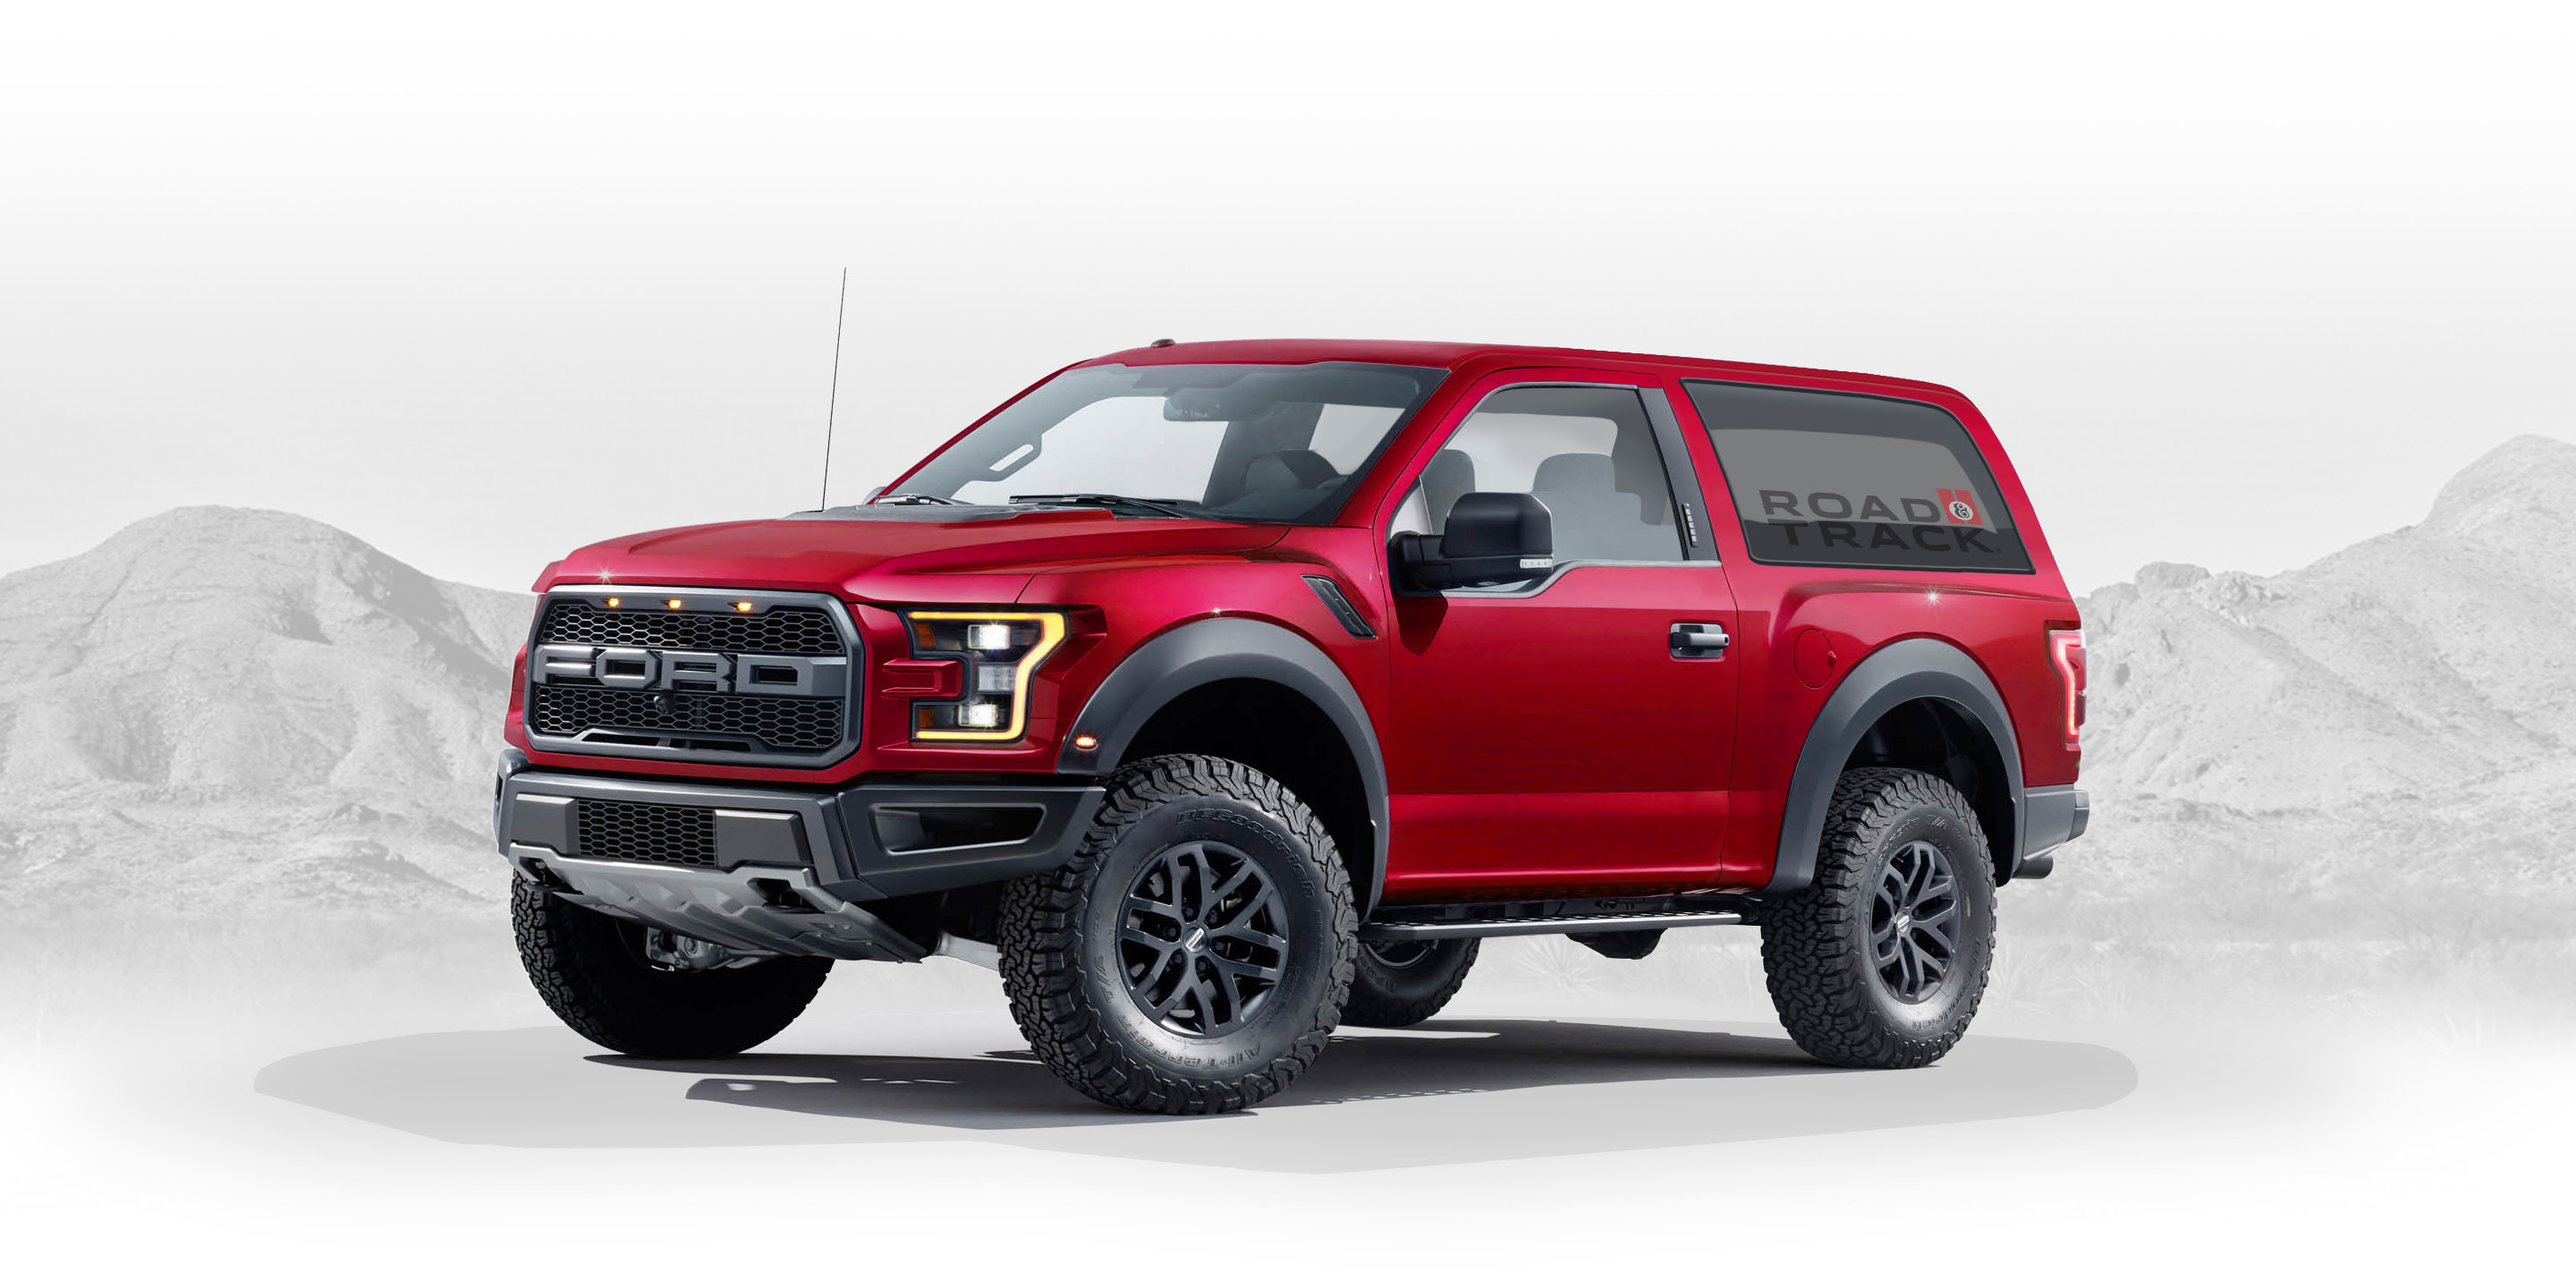 2020 Ford Bronco Designed By Fan - Graphic Artist Creates ...